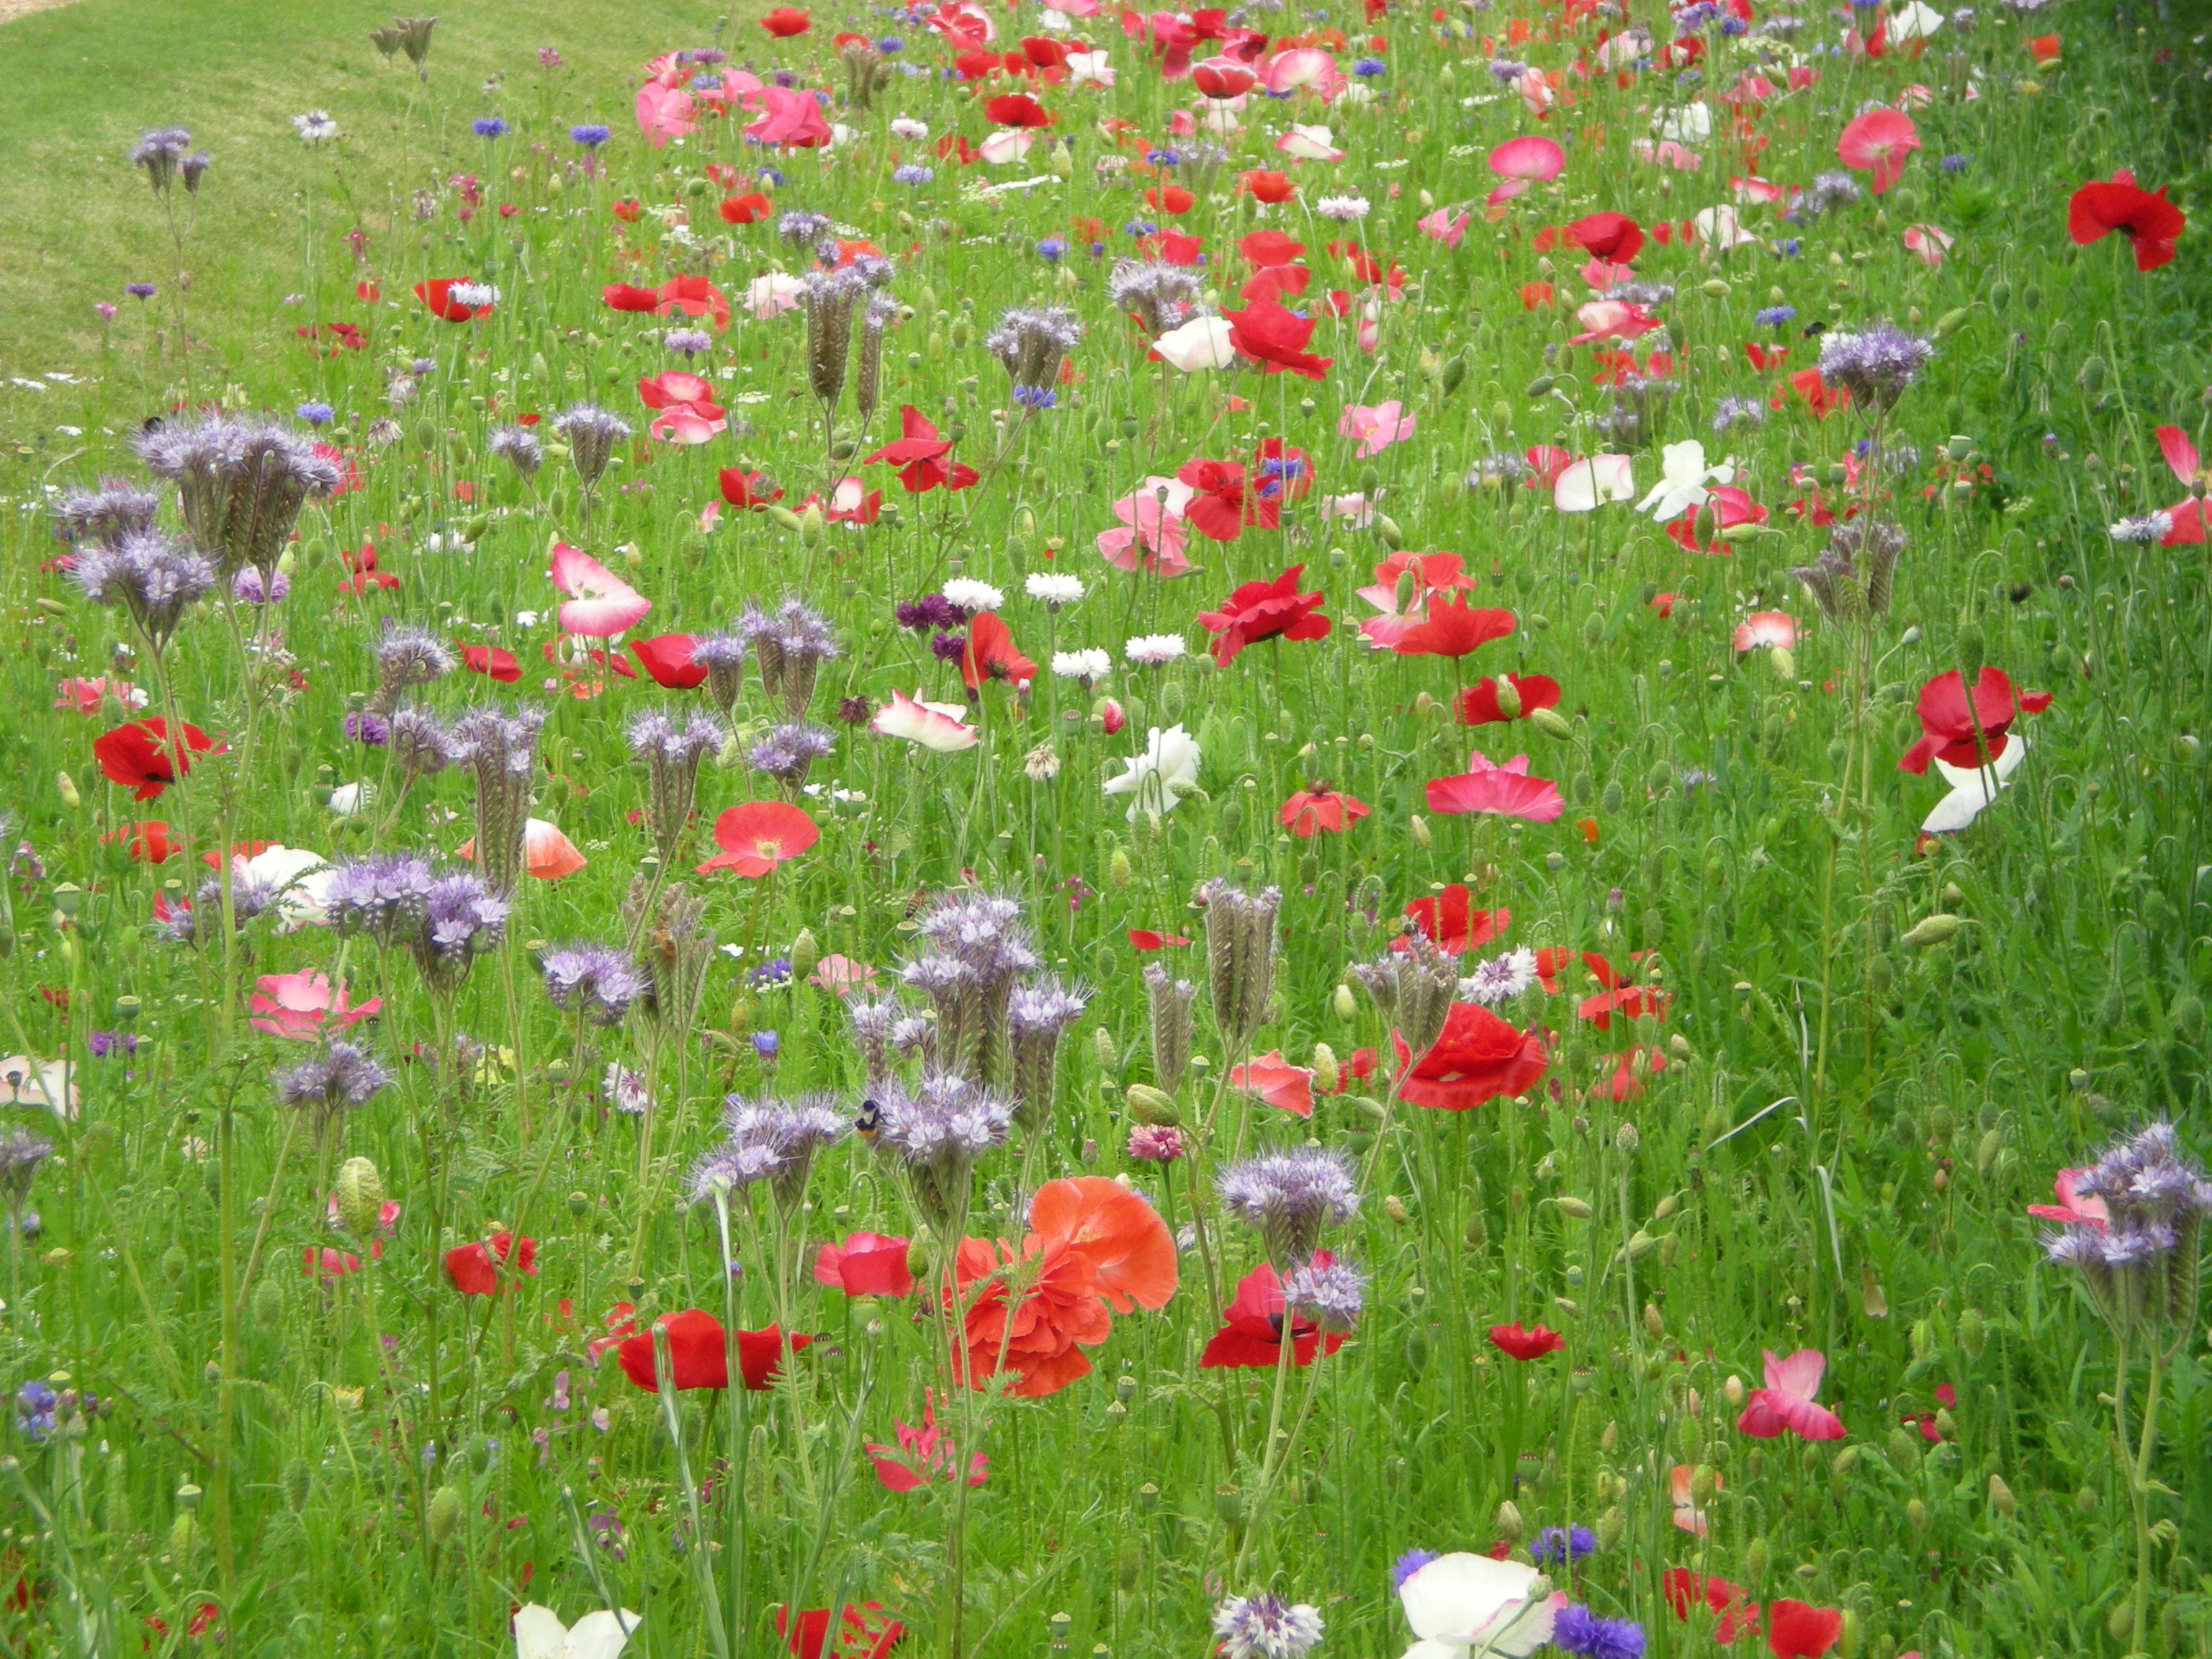 Meadow flowers at Polesdon Lacey Estate